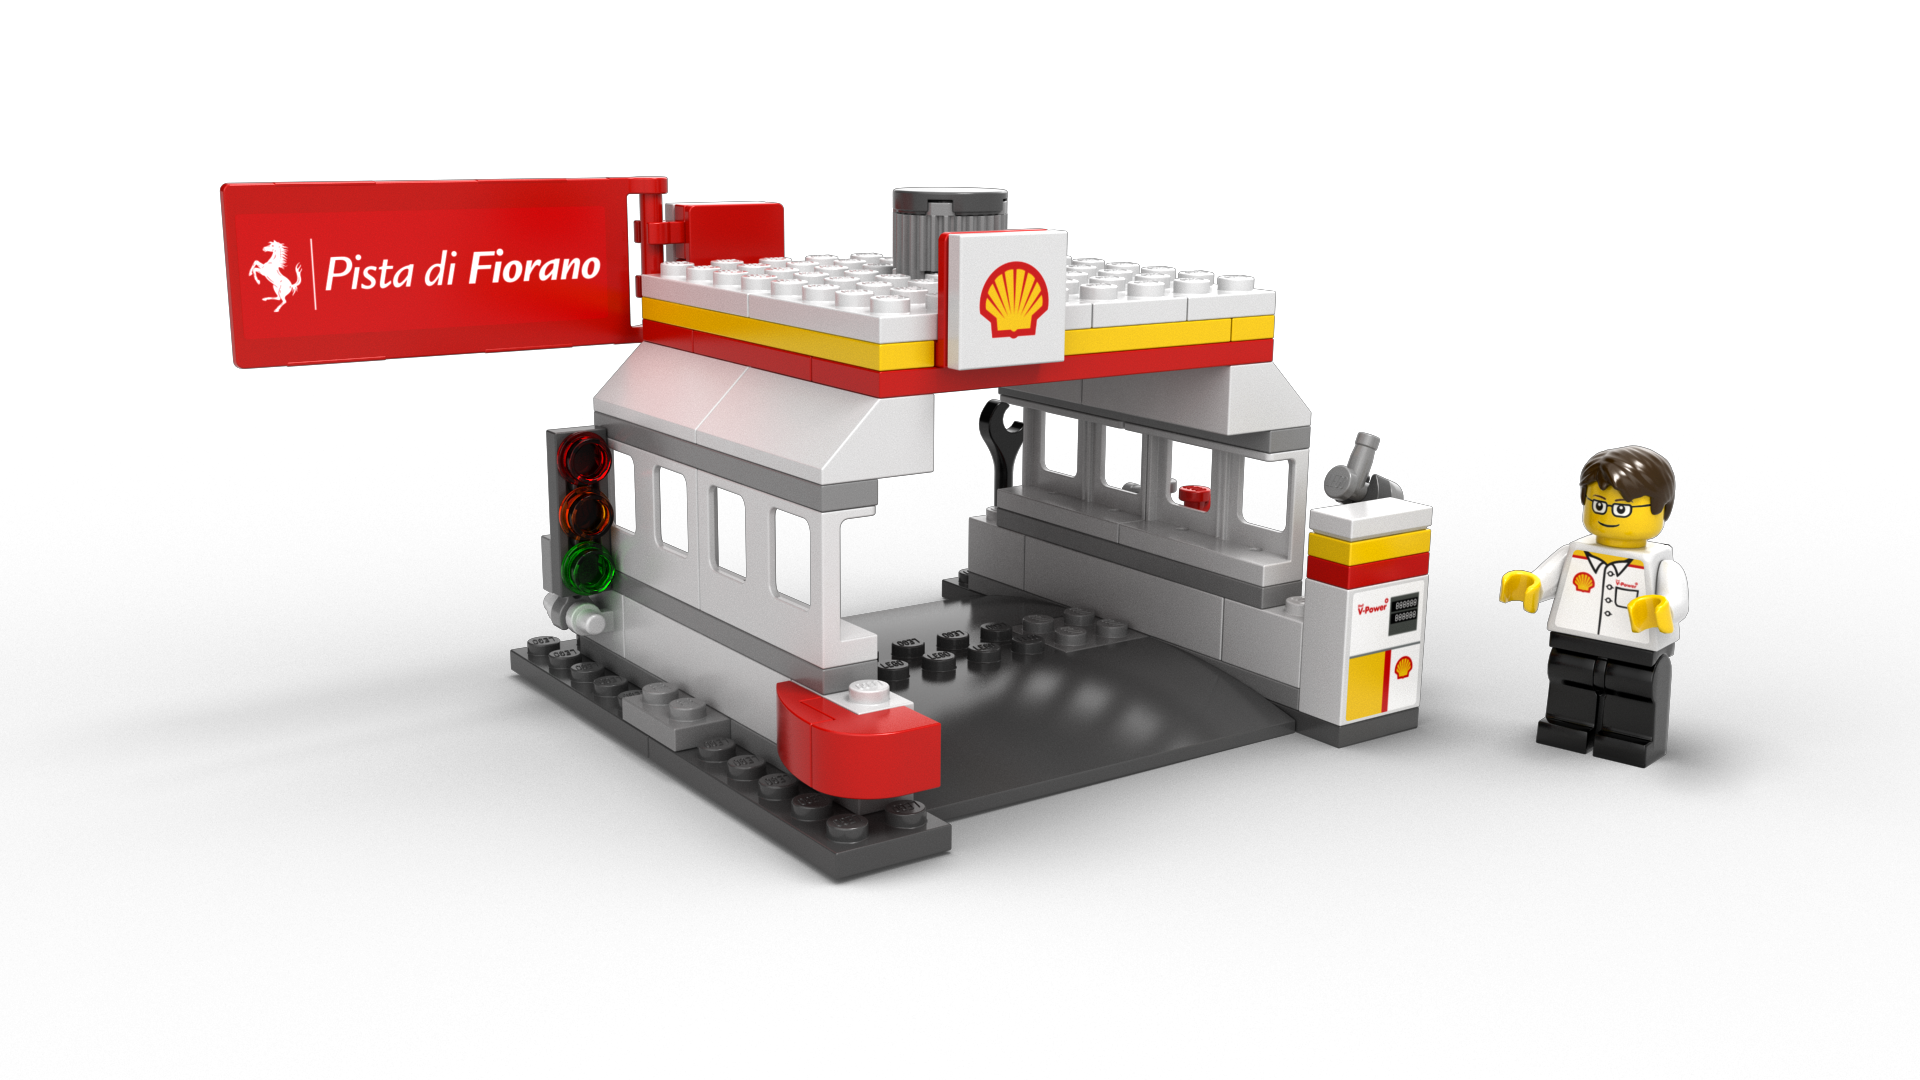 The New Shell V Power Lego Collection 2014 Geek Culture